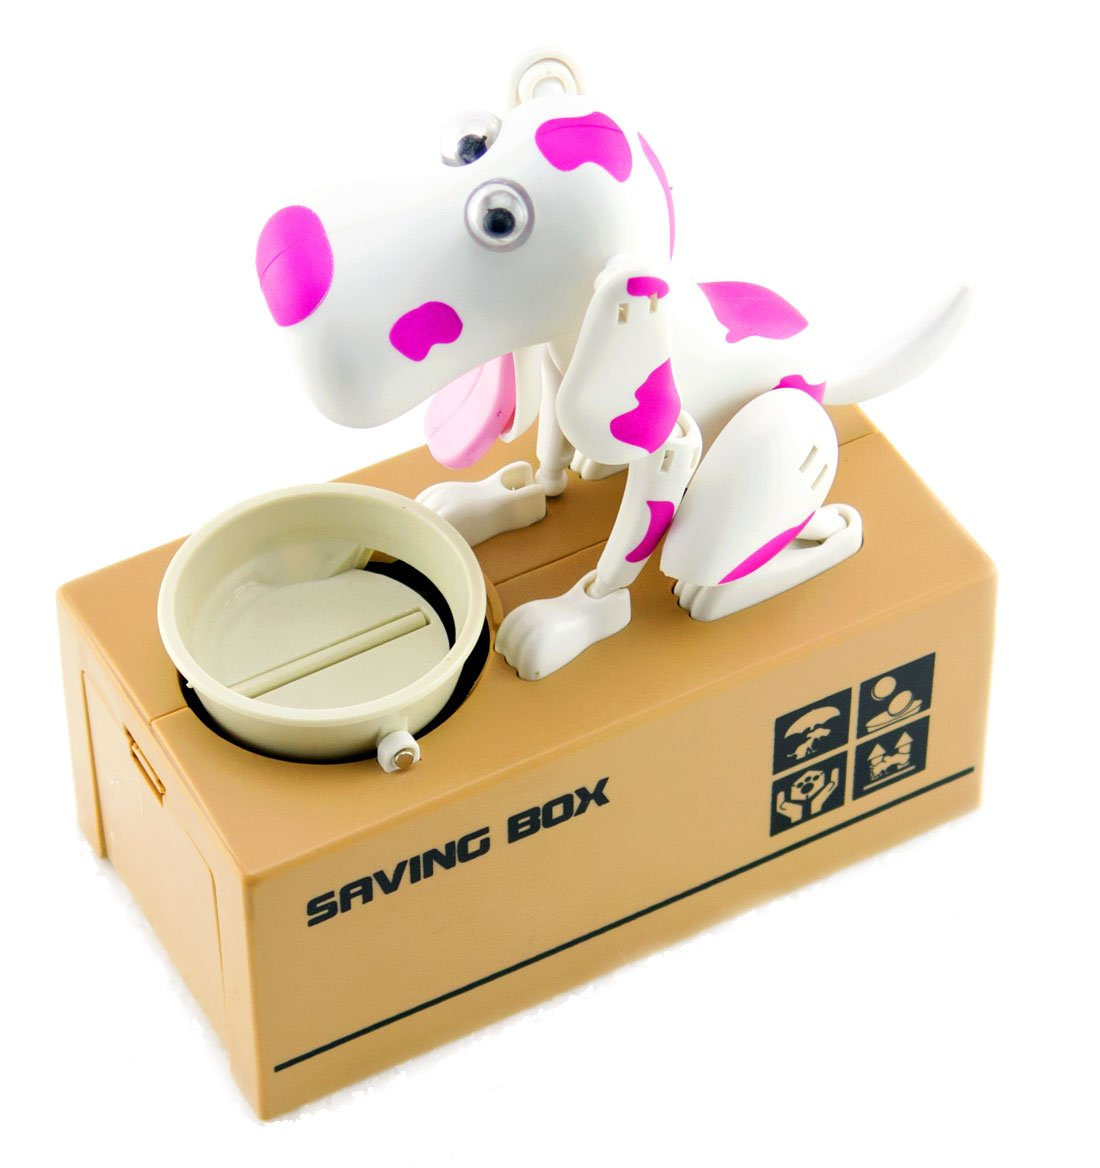 My Dog Piggy Bank - Robotic Coin Munching Toy Money Box - PINK by Bo-Toys